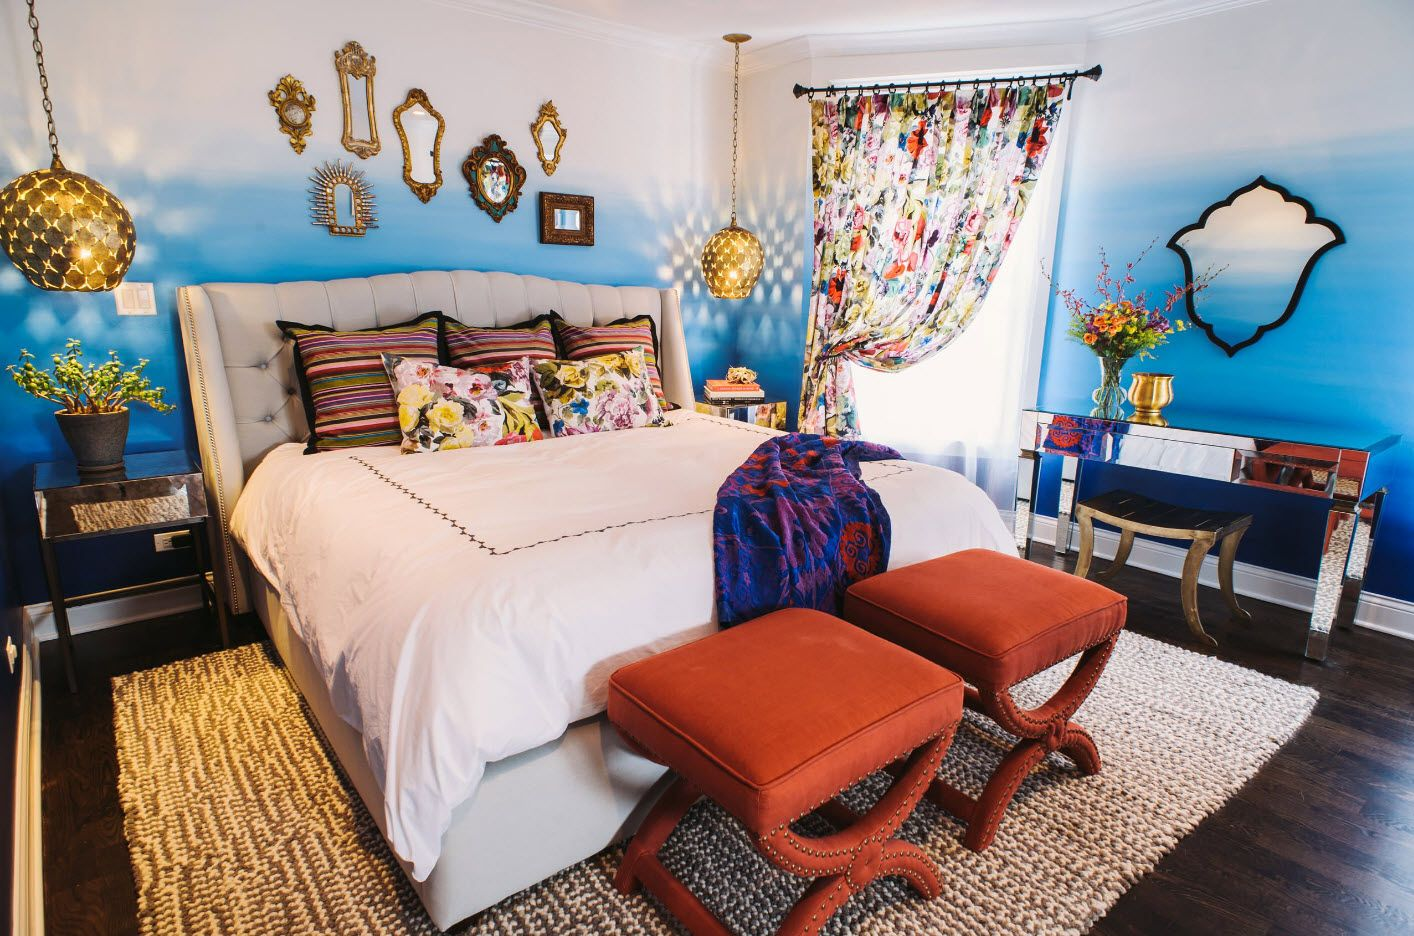 Red chairs at the footboard of the interesting style decorated walls bedroom